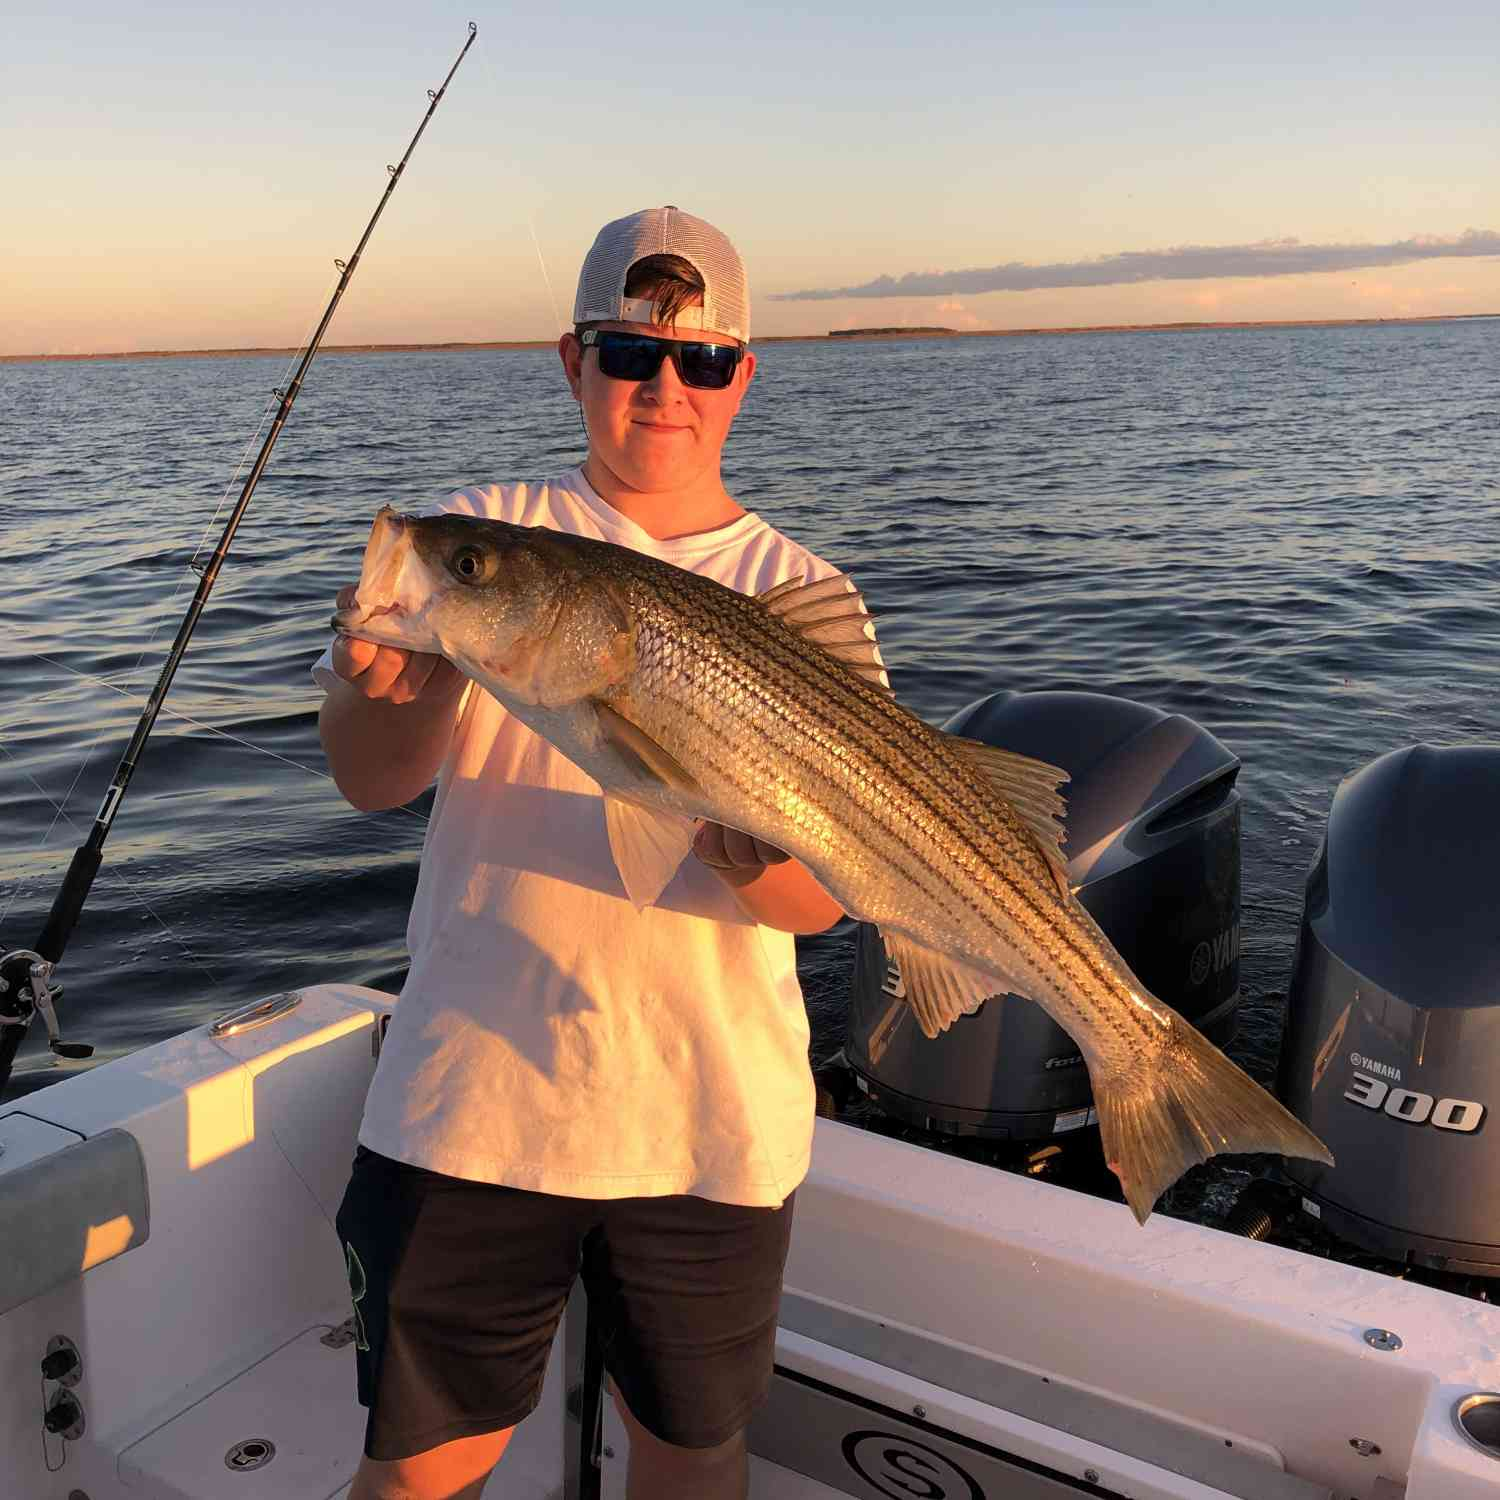 Title: Fishing - On board their Sportsman Open 282 Center Console - Location: Mayo, MD. Participating in the Photo Contest #SportsmanJune2020